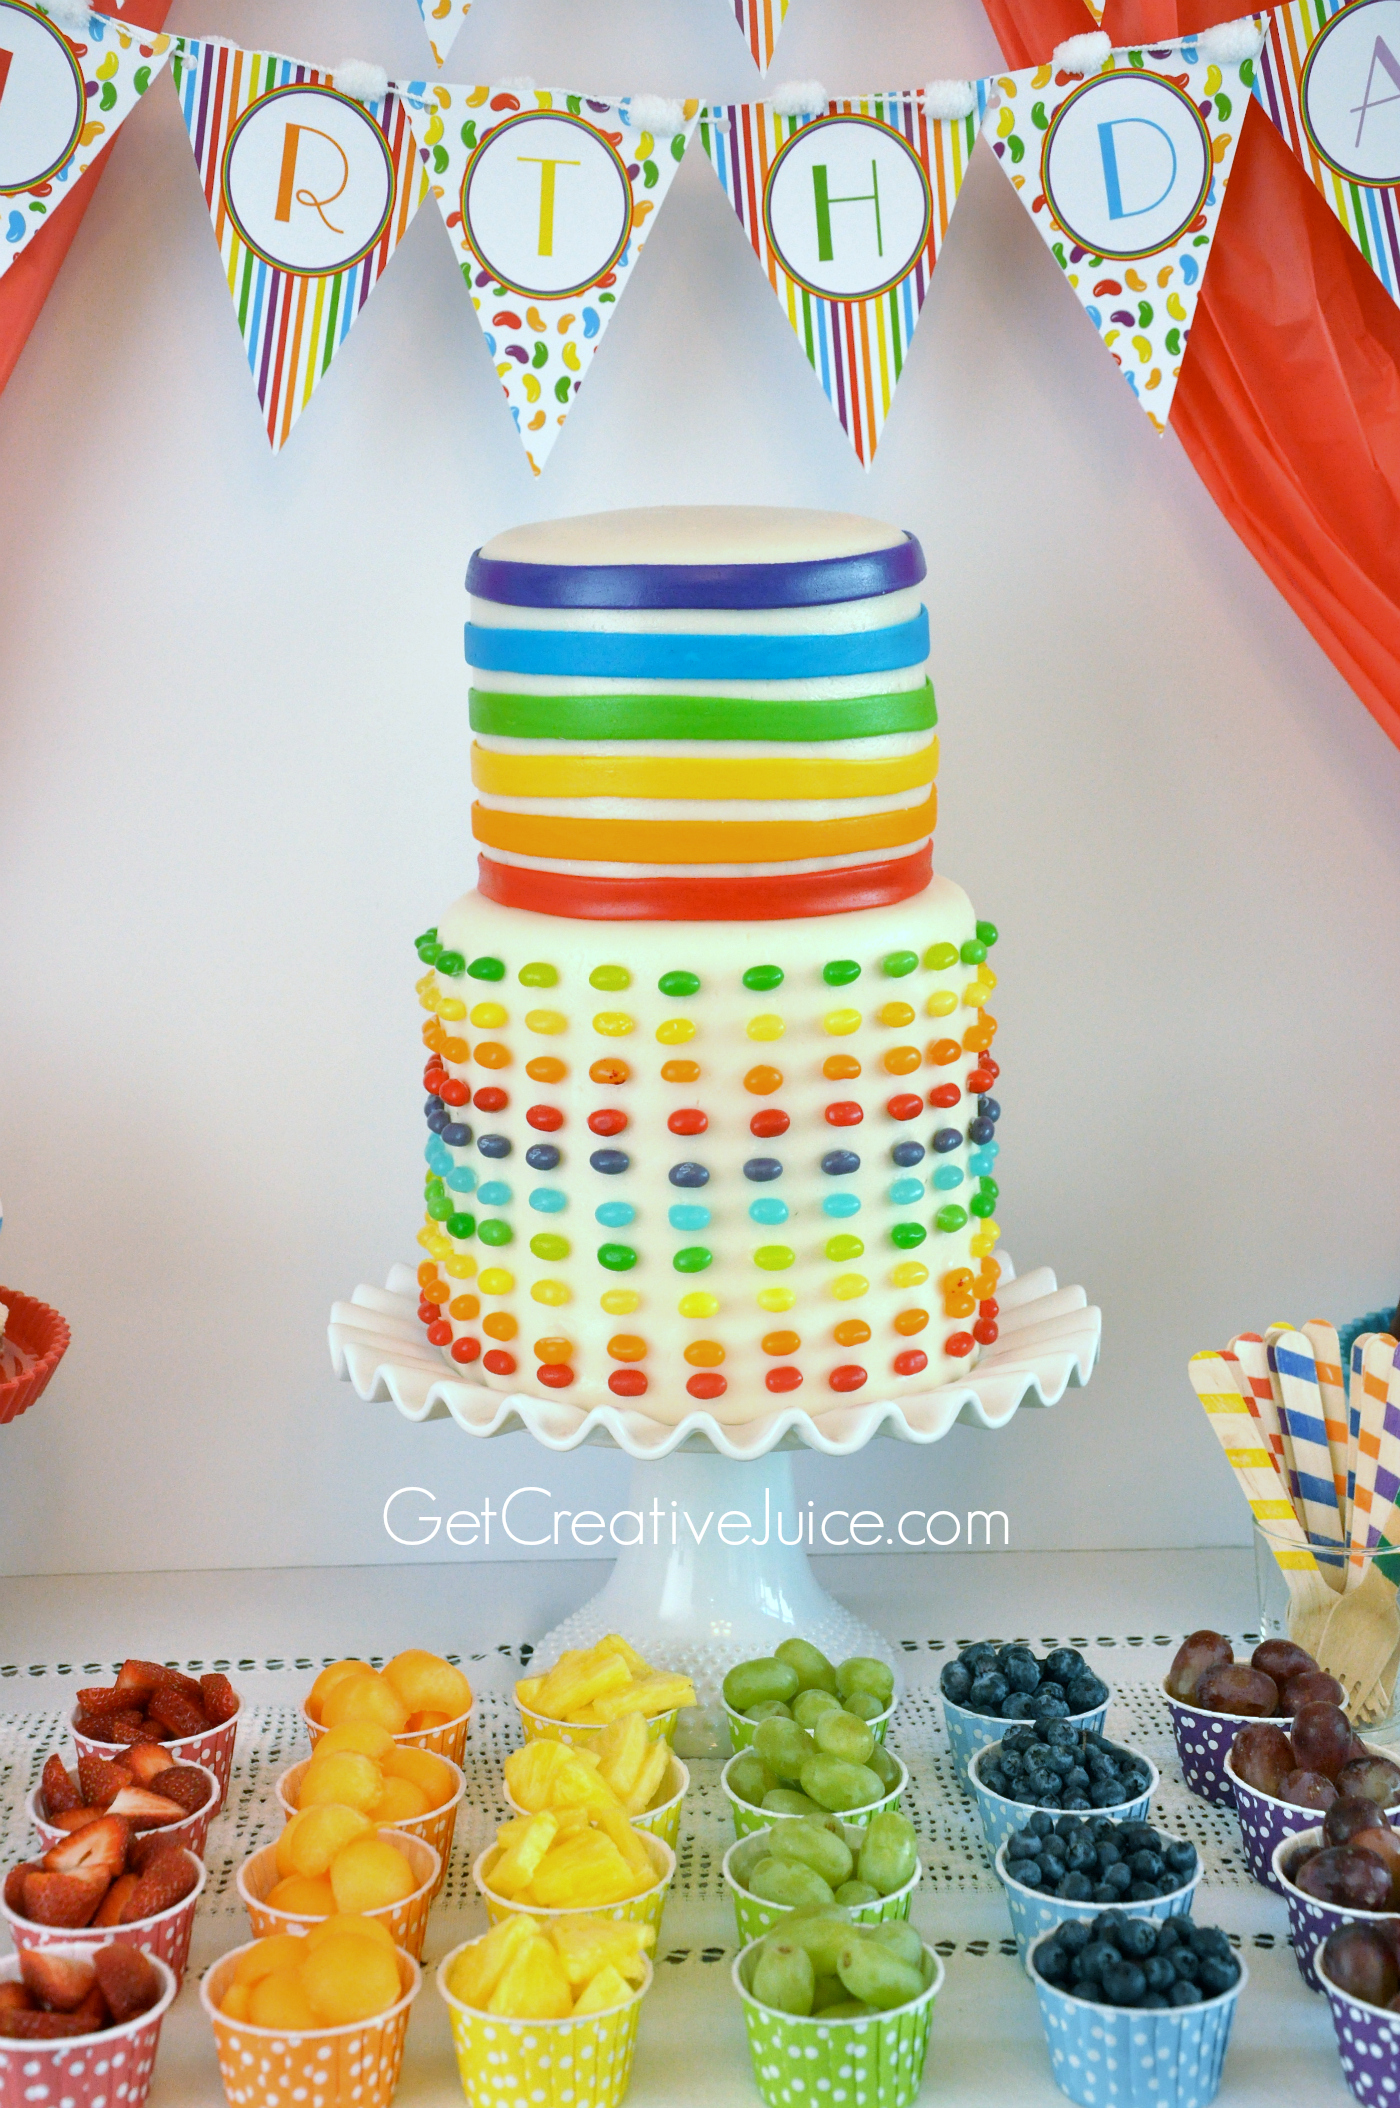 Out-of-the-box Birthday Cakes - Creative Juice